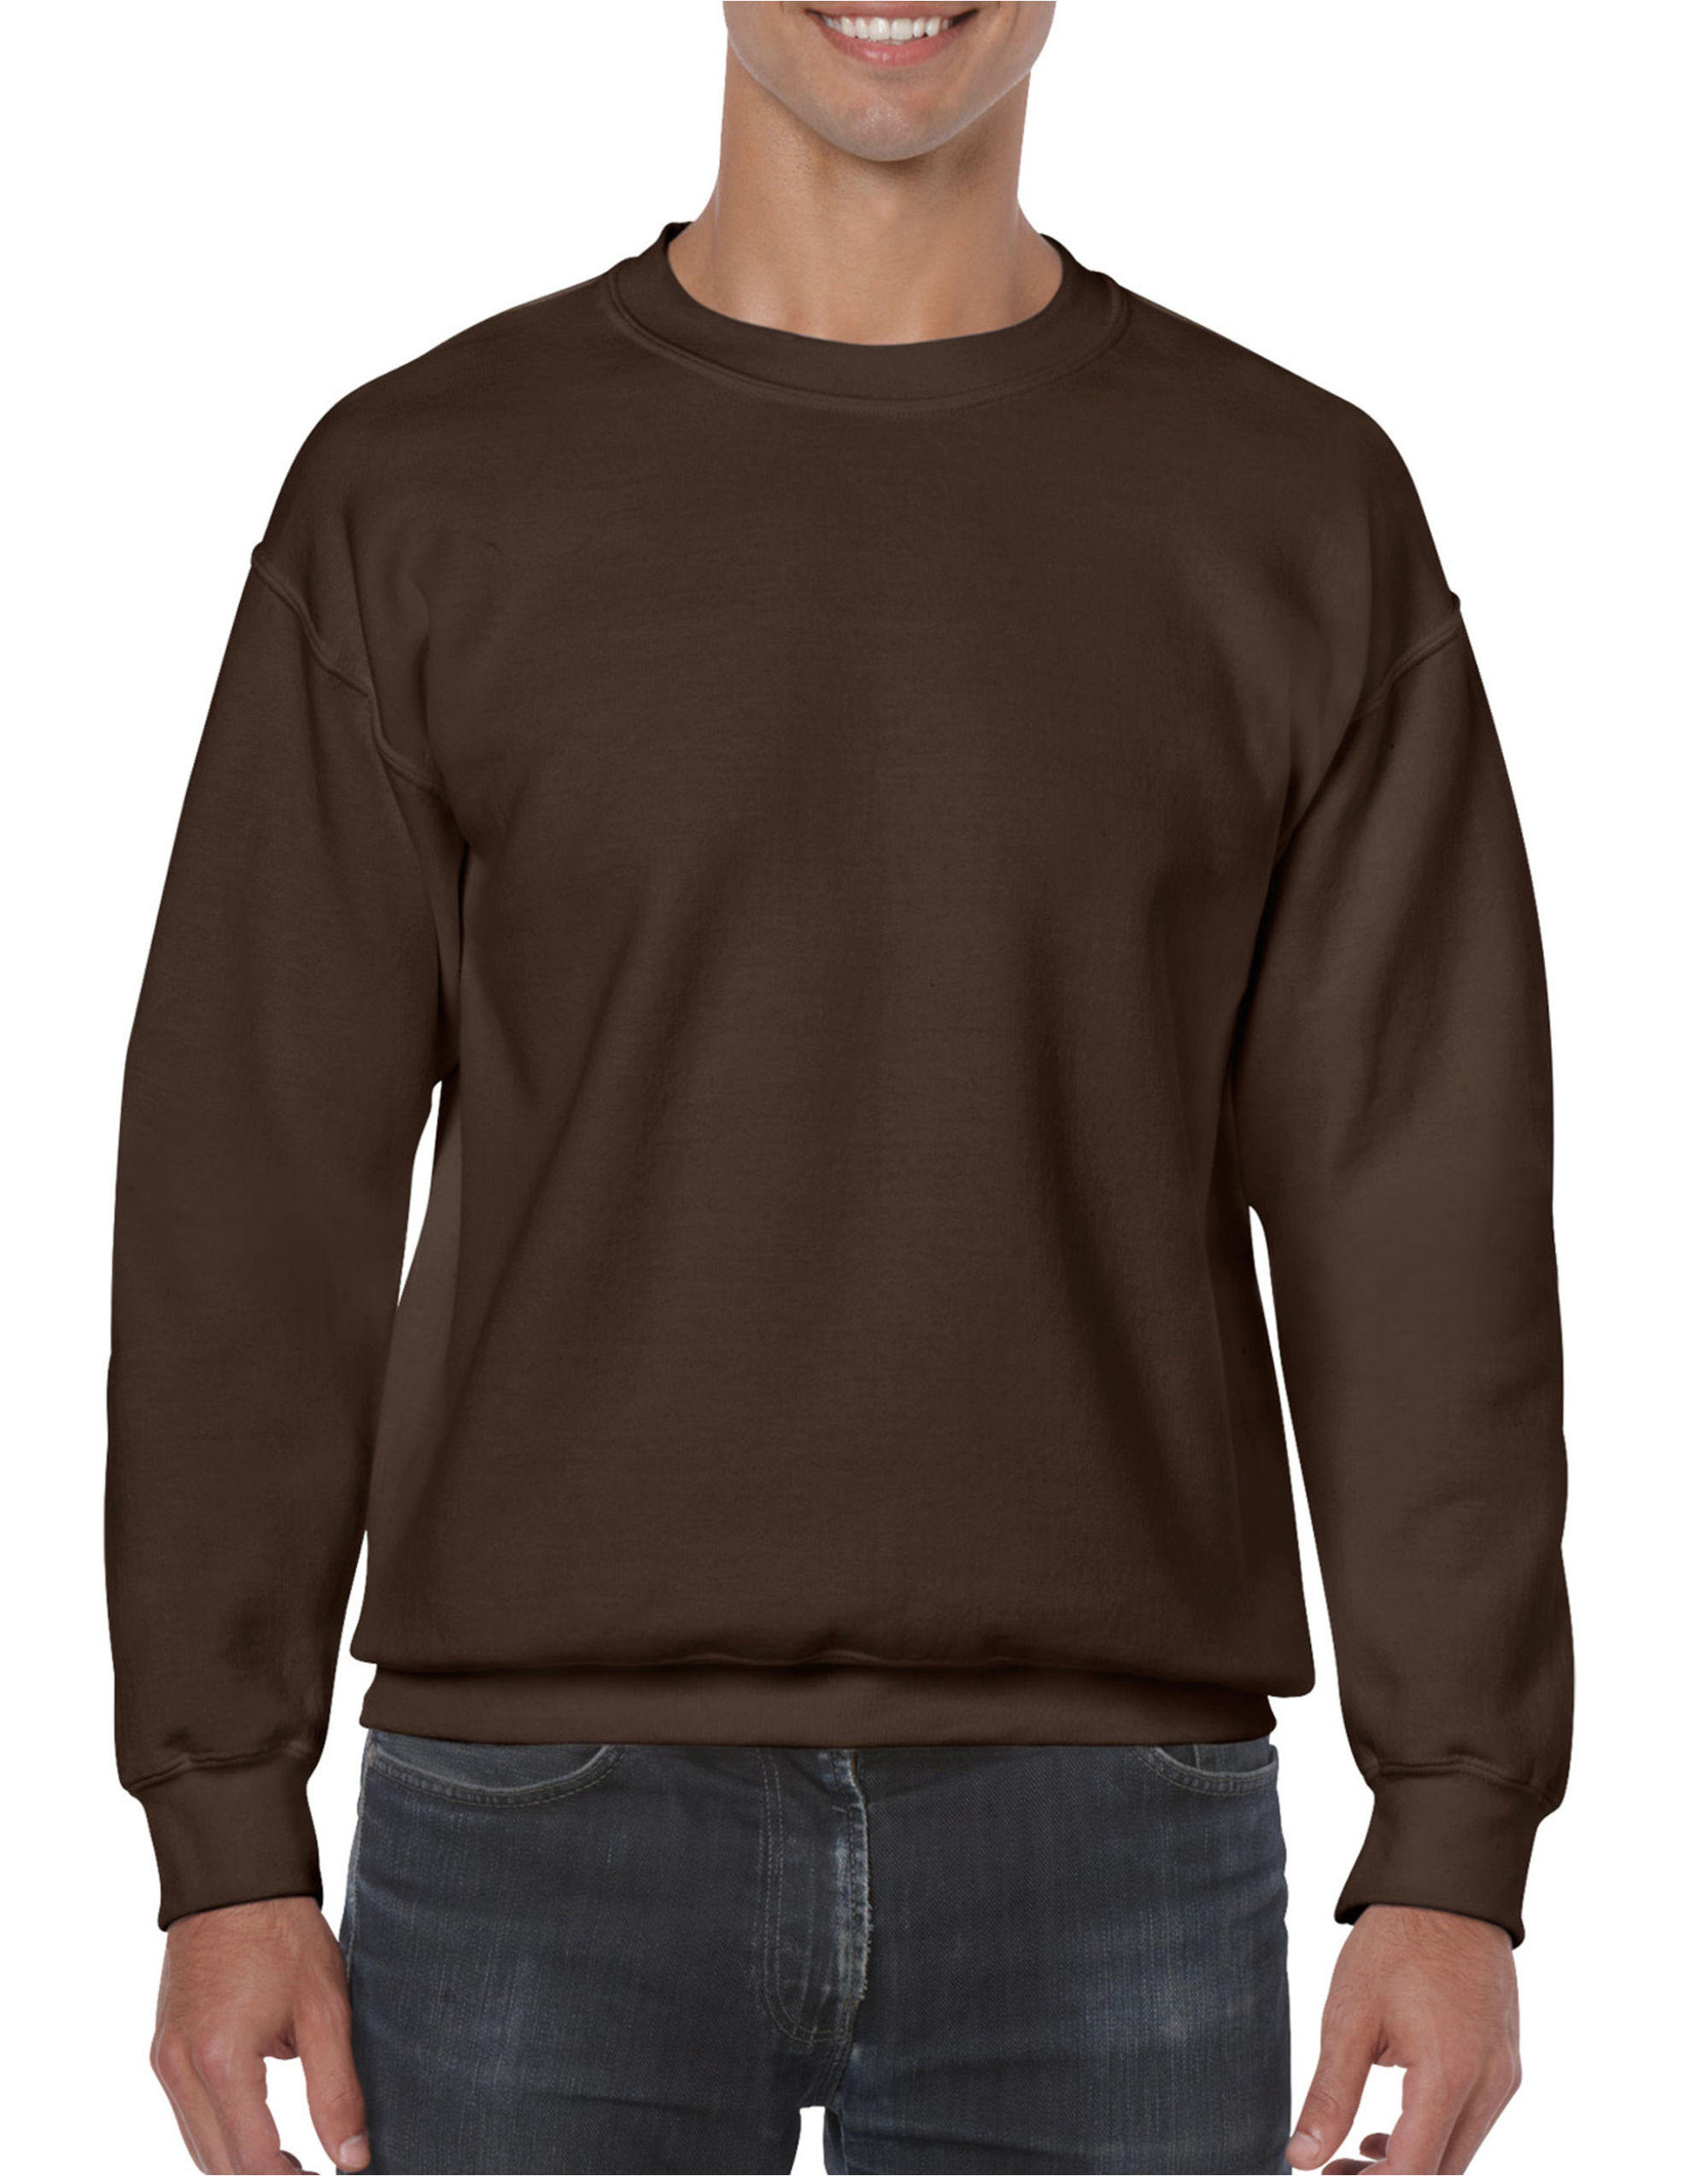 Heavy Blend  Adult Crewneck Sweatshirt